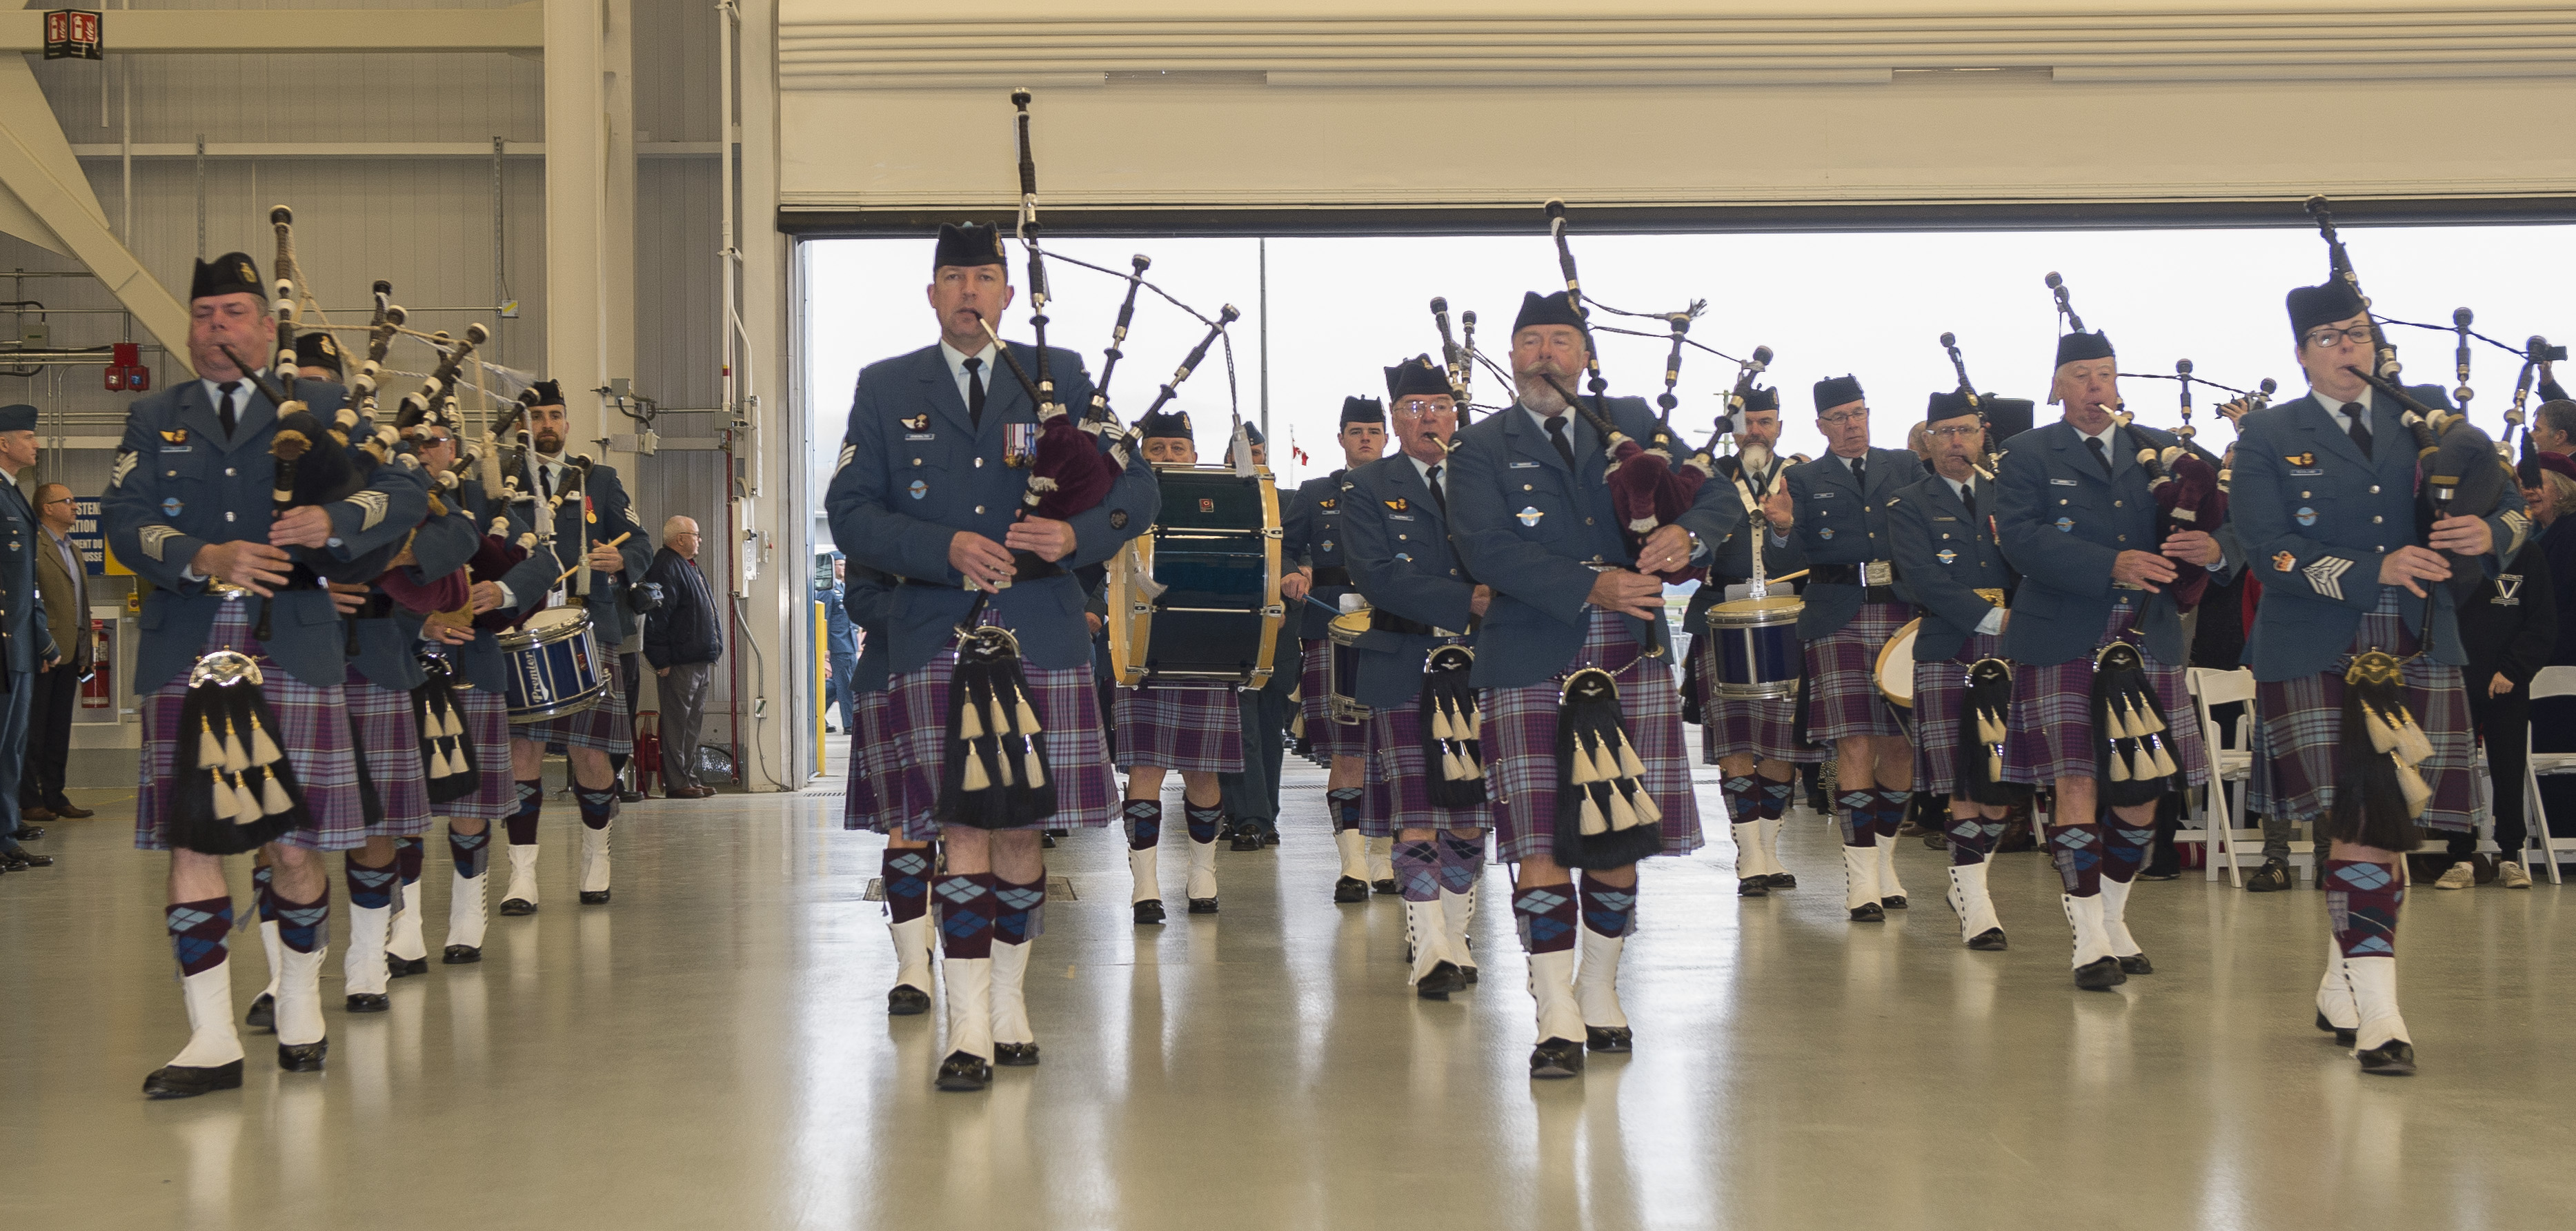 The 12 Wing Combined Pipes and Drums participated in the farewell ceremony for the Sea King helicopter on December 1, 2018. The band comprised members of the 443 Squadron Pipes and Drums, augmented by members of the 12 Wing Pipes and Drums. PHOTO: Leading Seaman Laurance Clarke, SW05-2018-0497-660